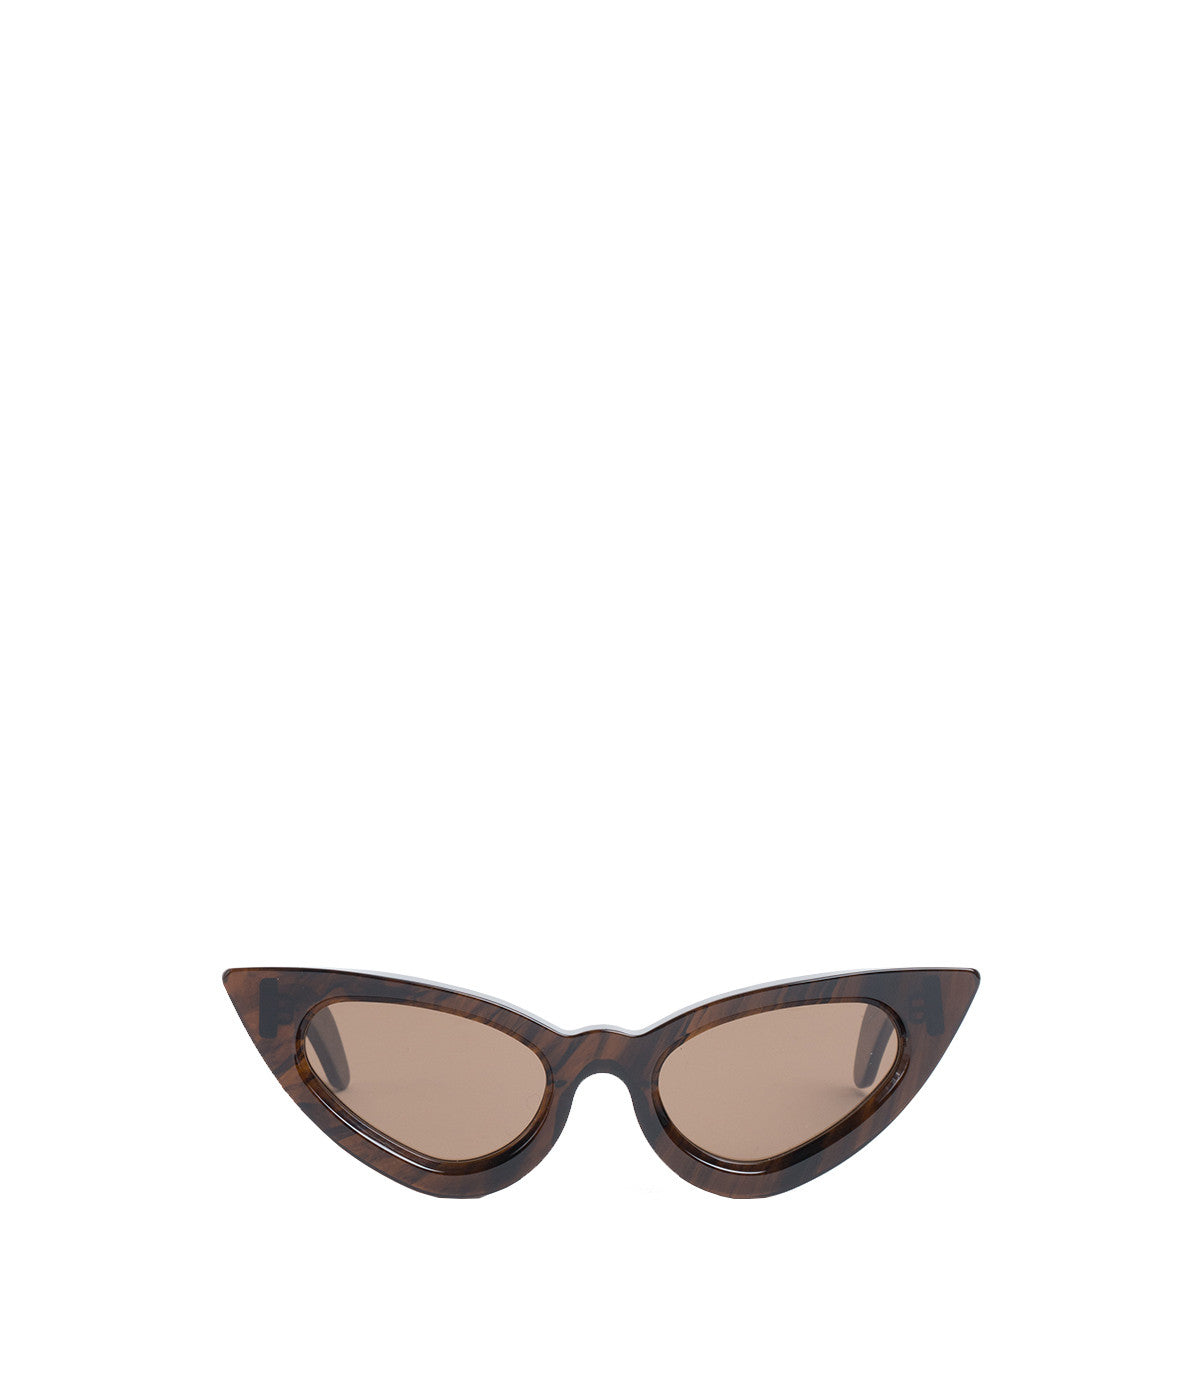 Y3 Brown Shiny Sunglasses